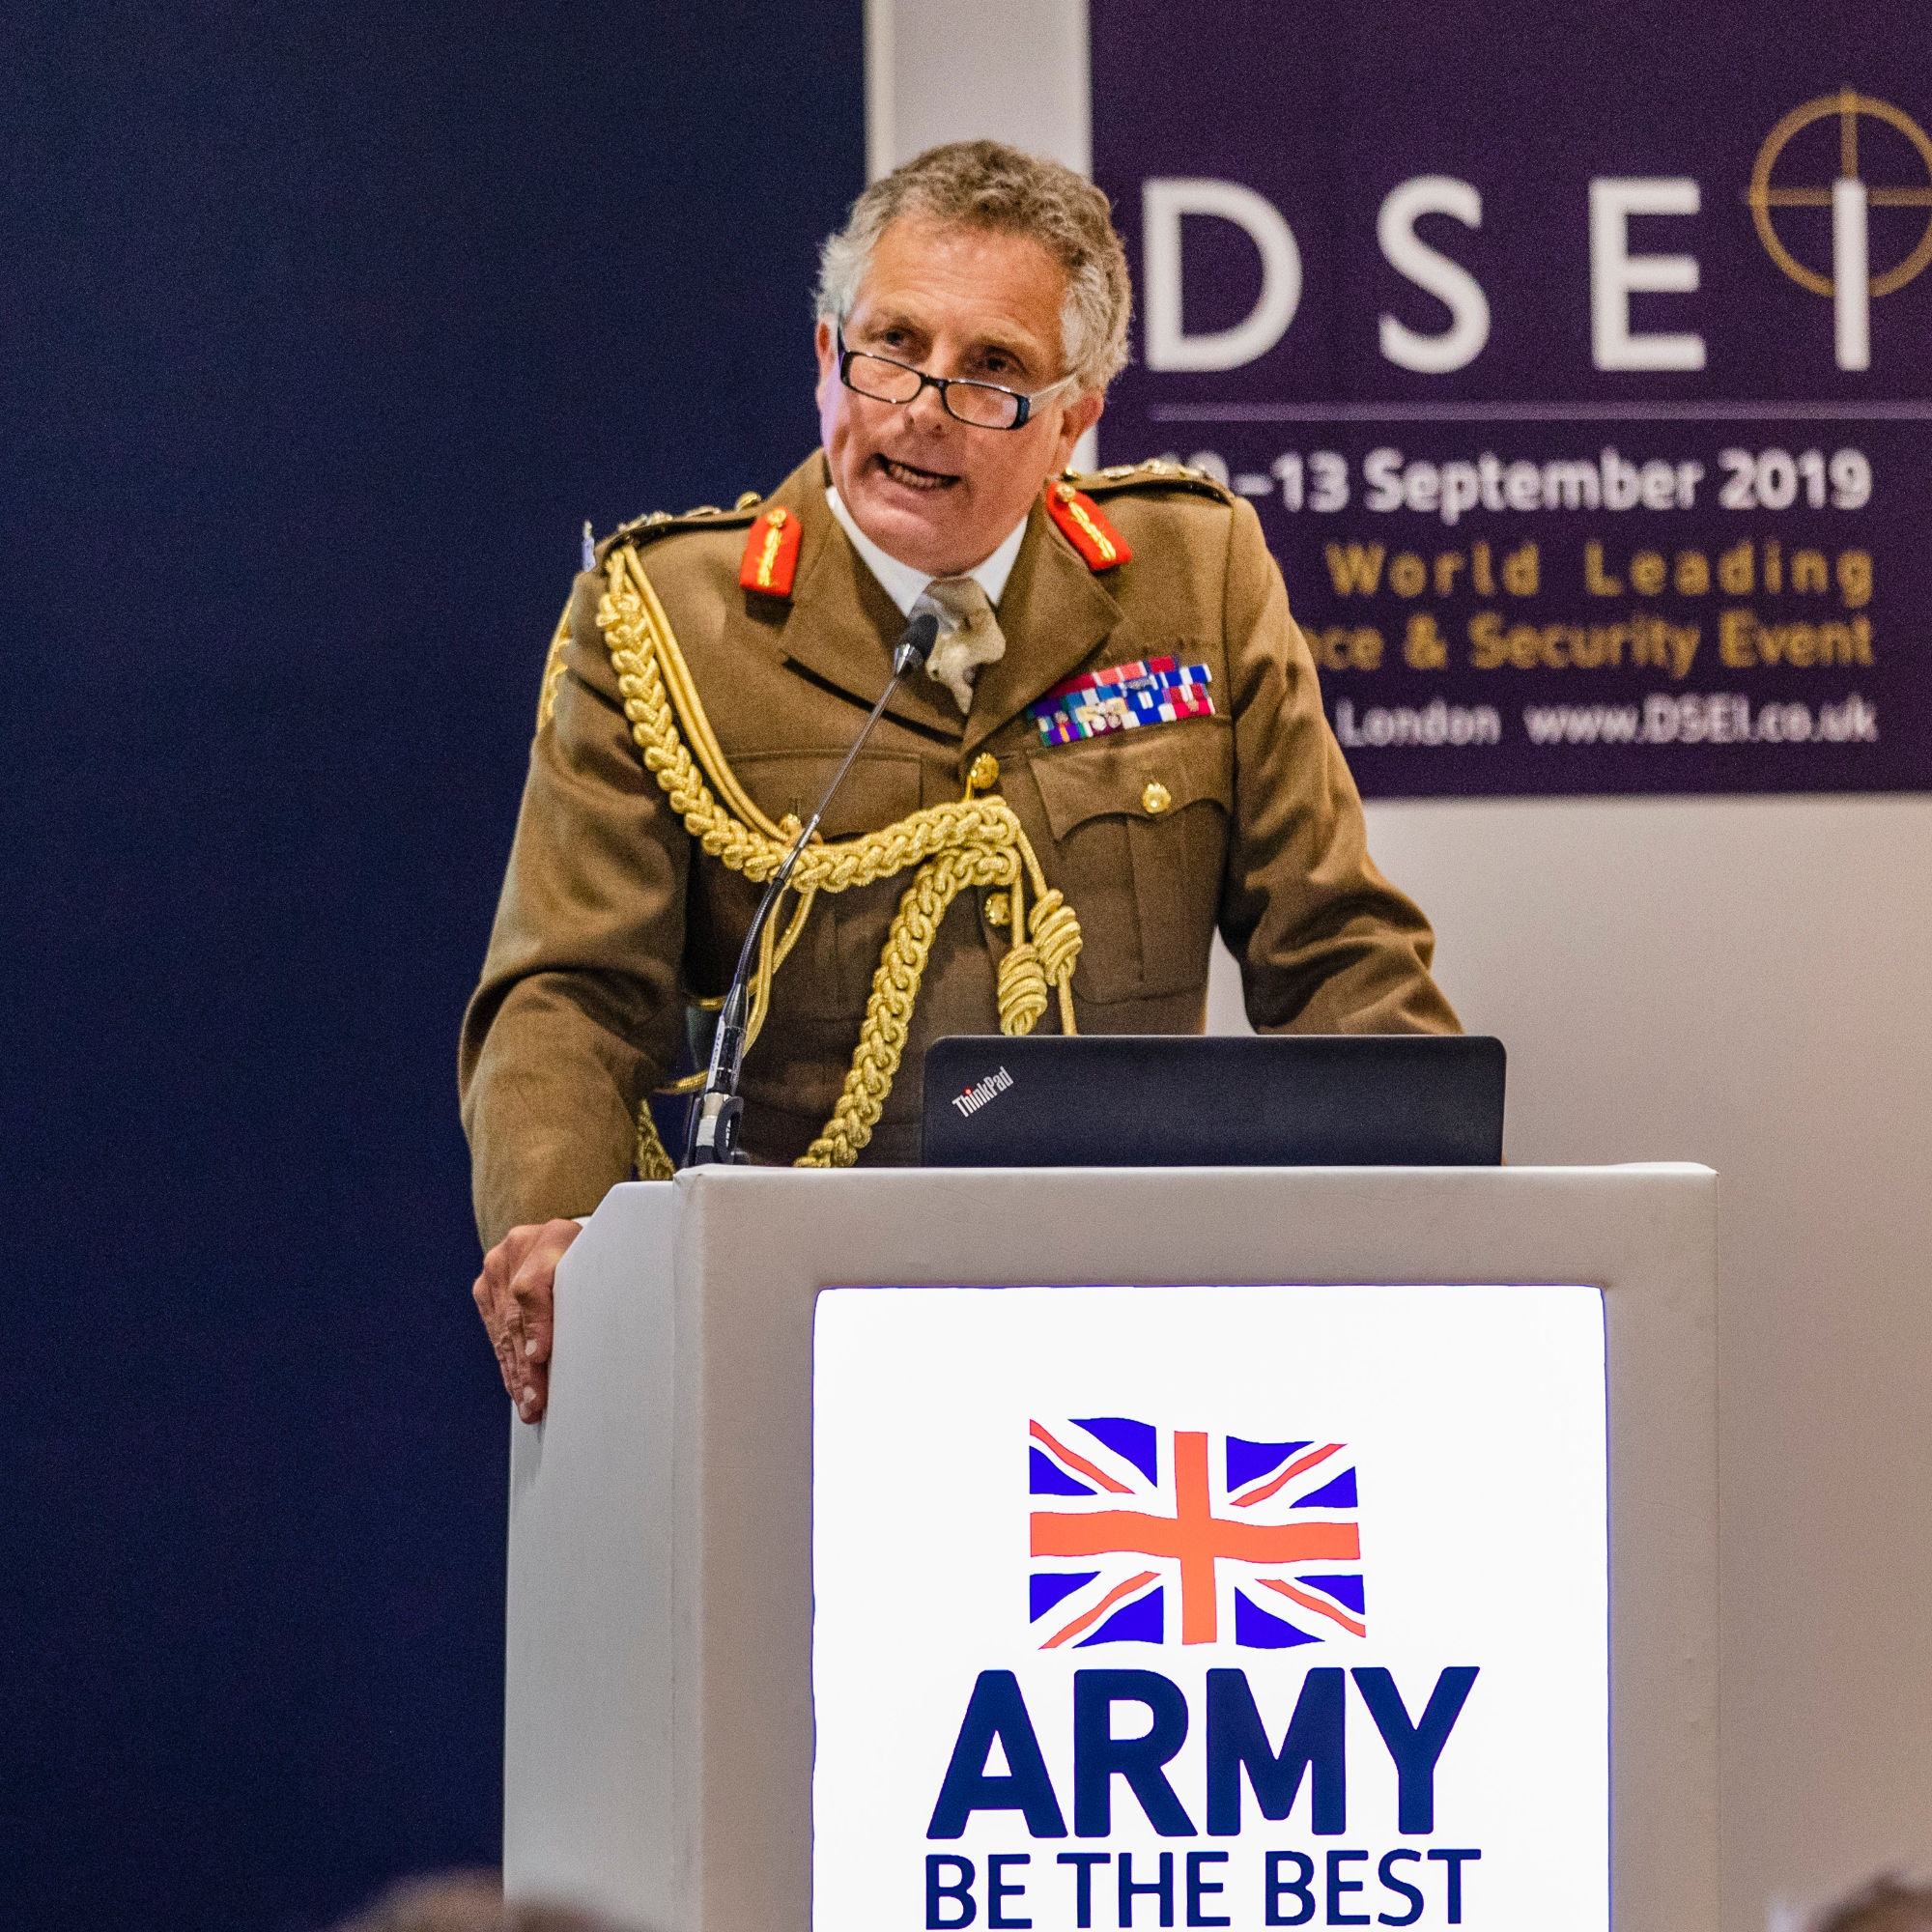 https://info.clarion-defence.com/e/339191/keynote-speakers/3bp84f/373347014?h=oVNmnG06BHO0m6M_ox6TVtX4QcBLBm1HVl7YJHDNd3w